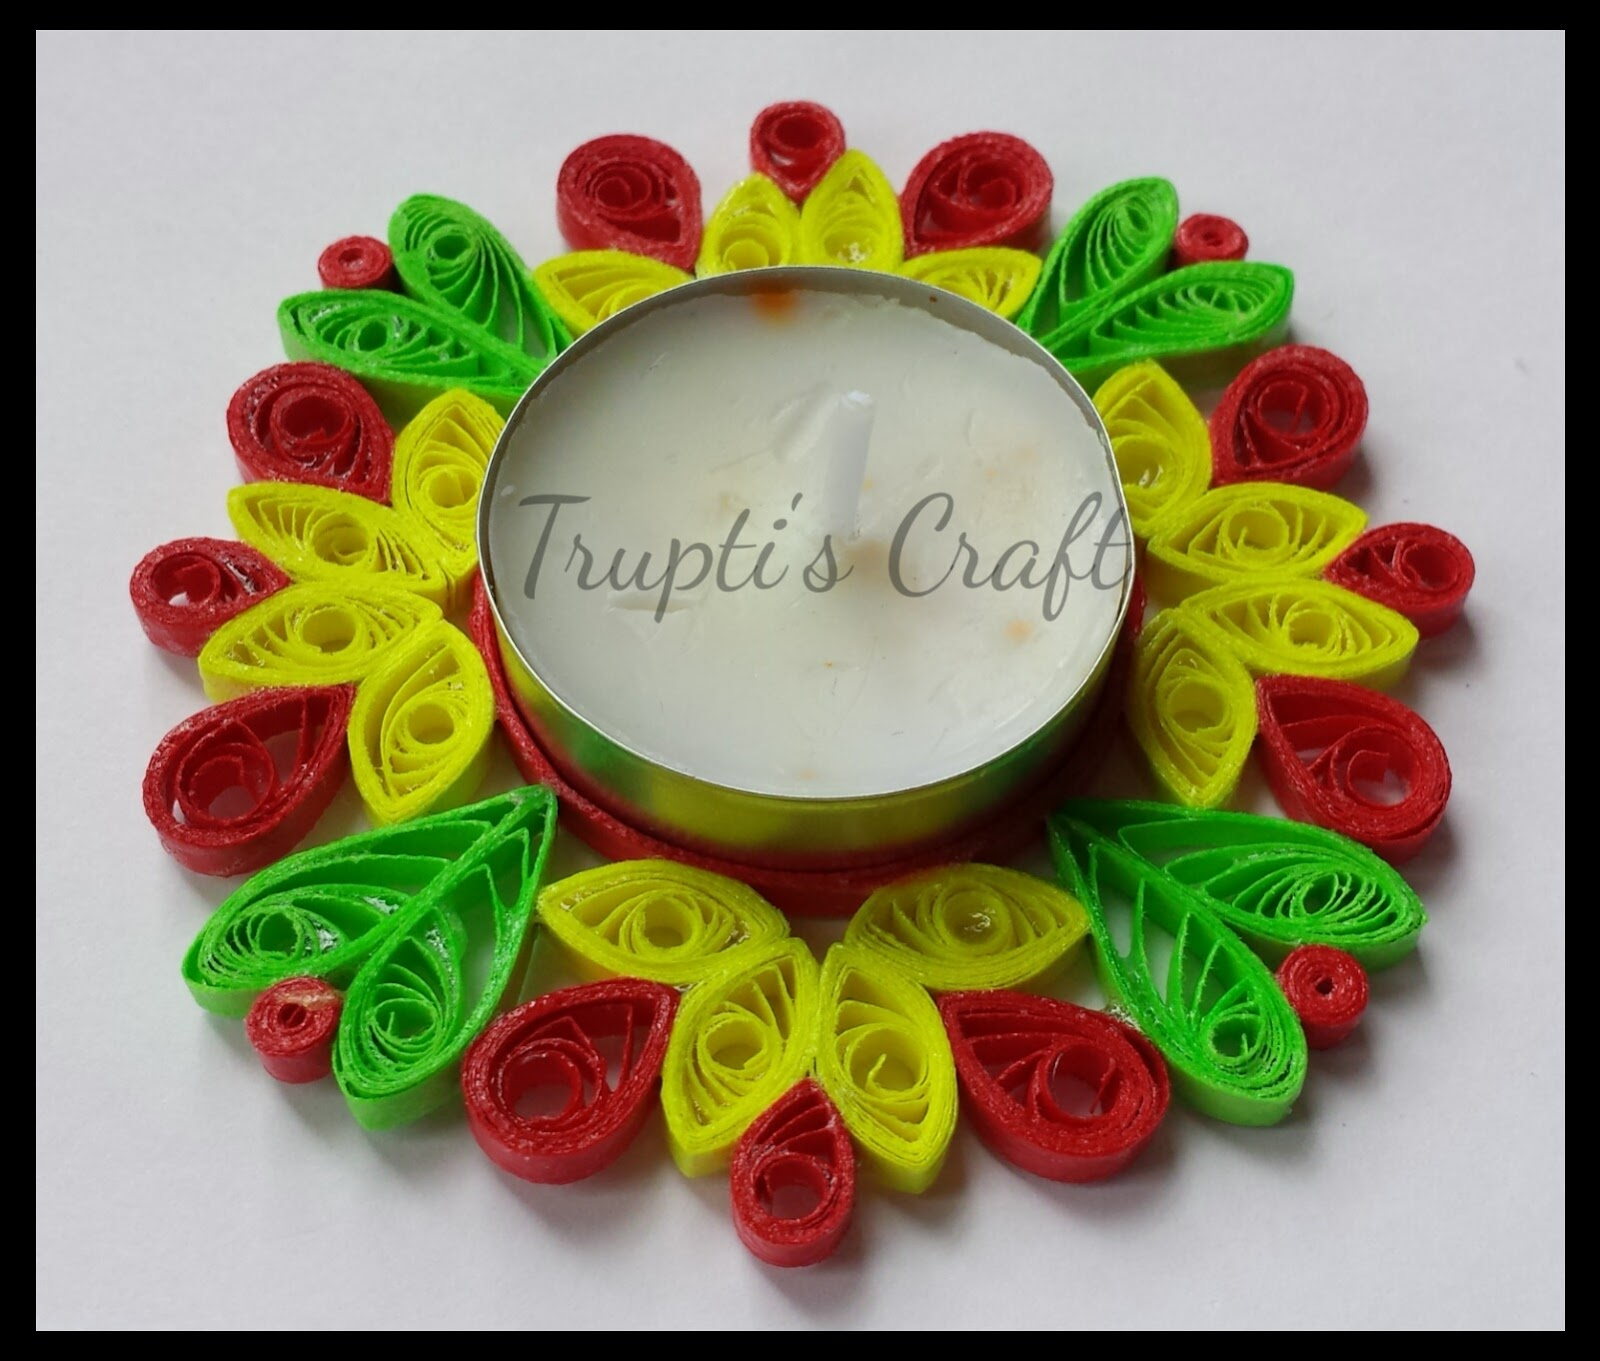 Trupti 39 s craft paper quilling candle holders for Quilling paper craft